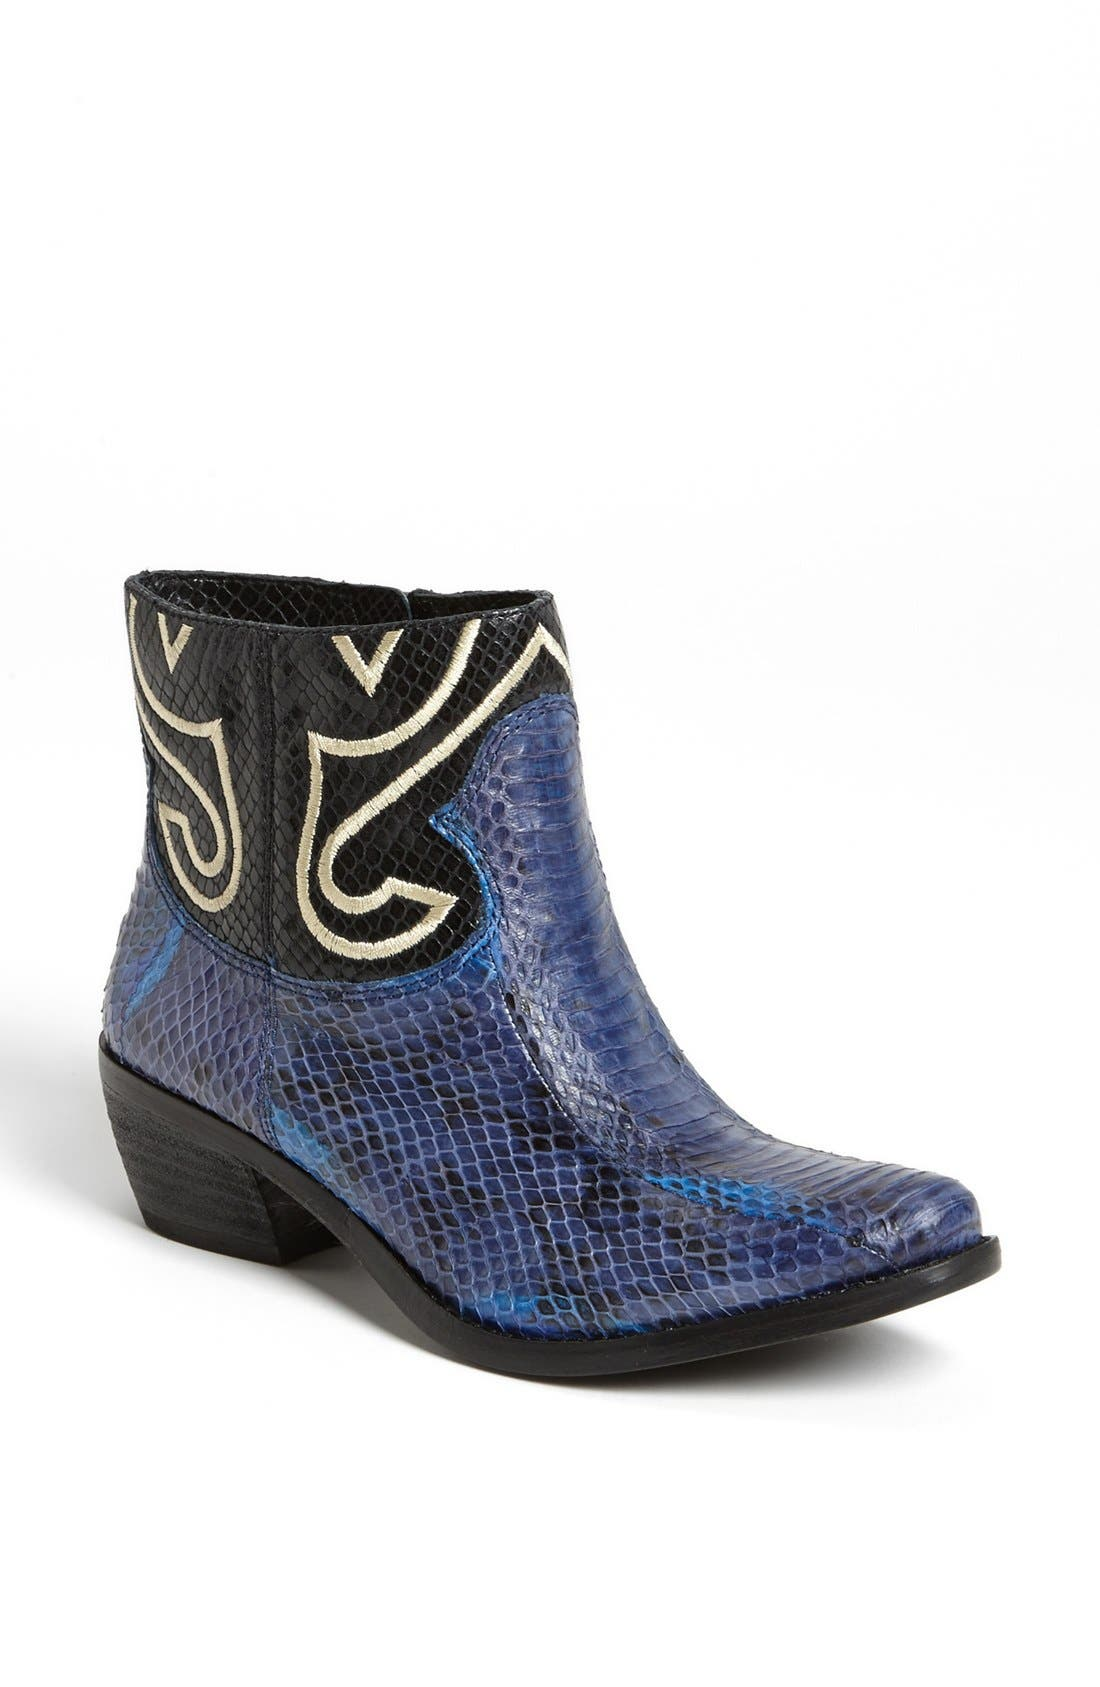 Alternate Image 1 Selected - Vince Camuto 'Calina' Boot